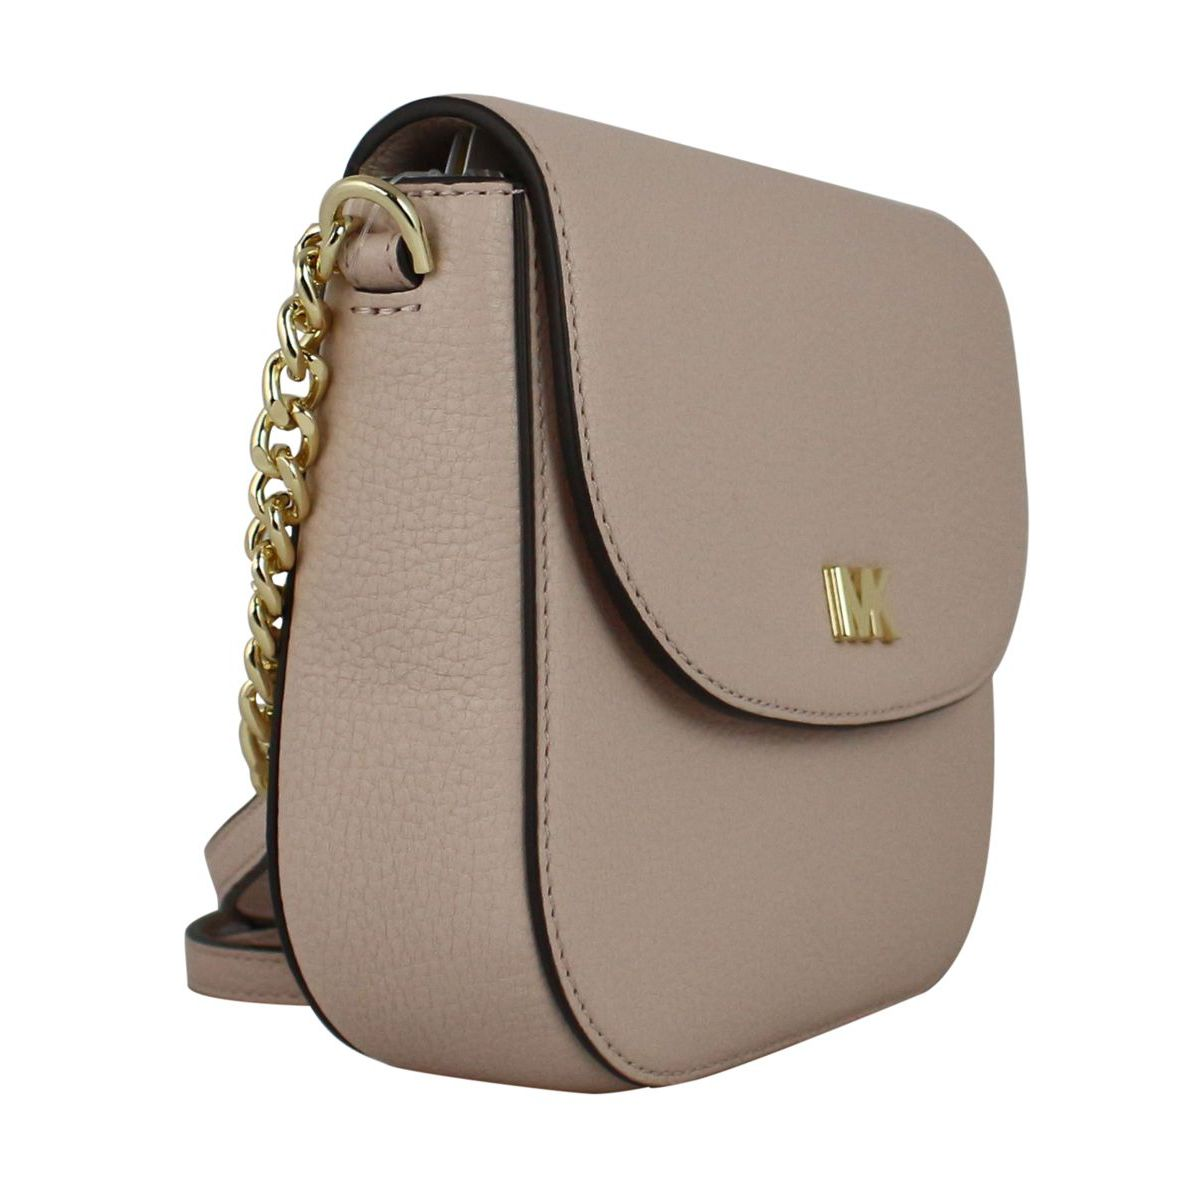 Half Dome shoulder bag in leather Powder pink Michael Kors